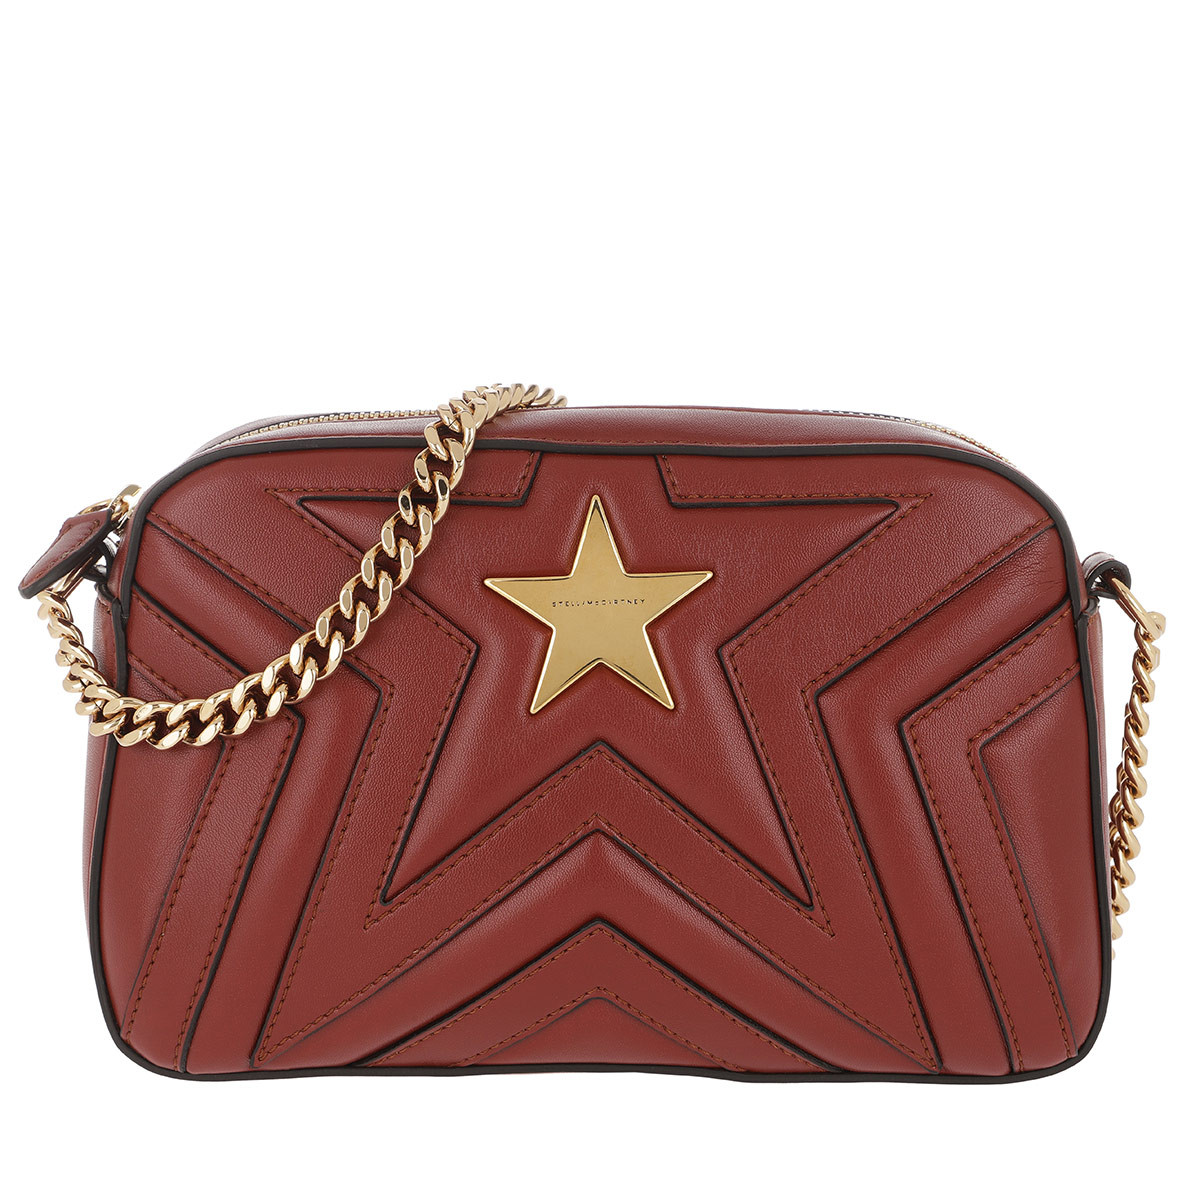 Stella Mccartney Stella Mc Cartney Schoudertassen - Camera Bag Medium Red in rood voor dames Goedkope Beste Wholesale adviseren Verkoopadressen 1bT94